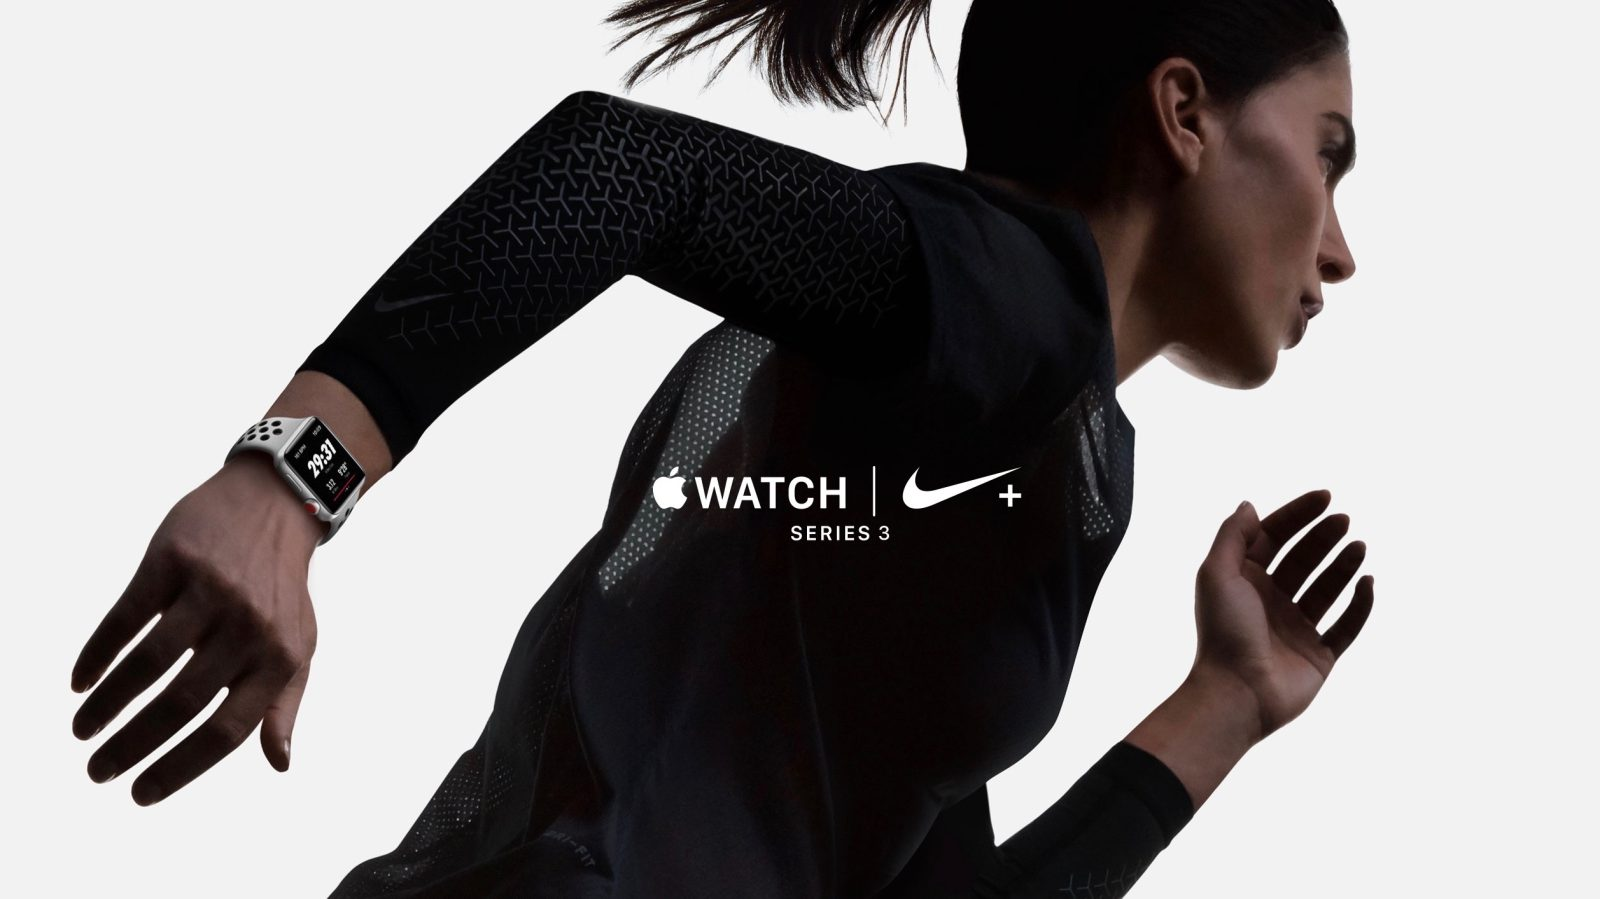 Nombre provisional bancarrota Discriminatorio  Apple Watch Nike+ Series 3 models now available - 9to5Mac